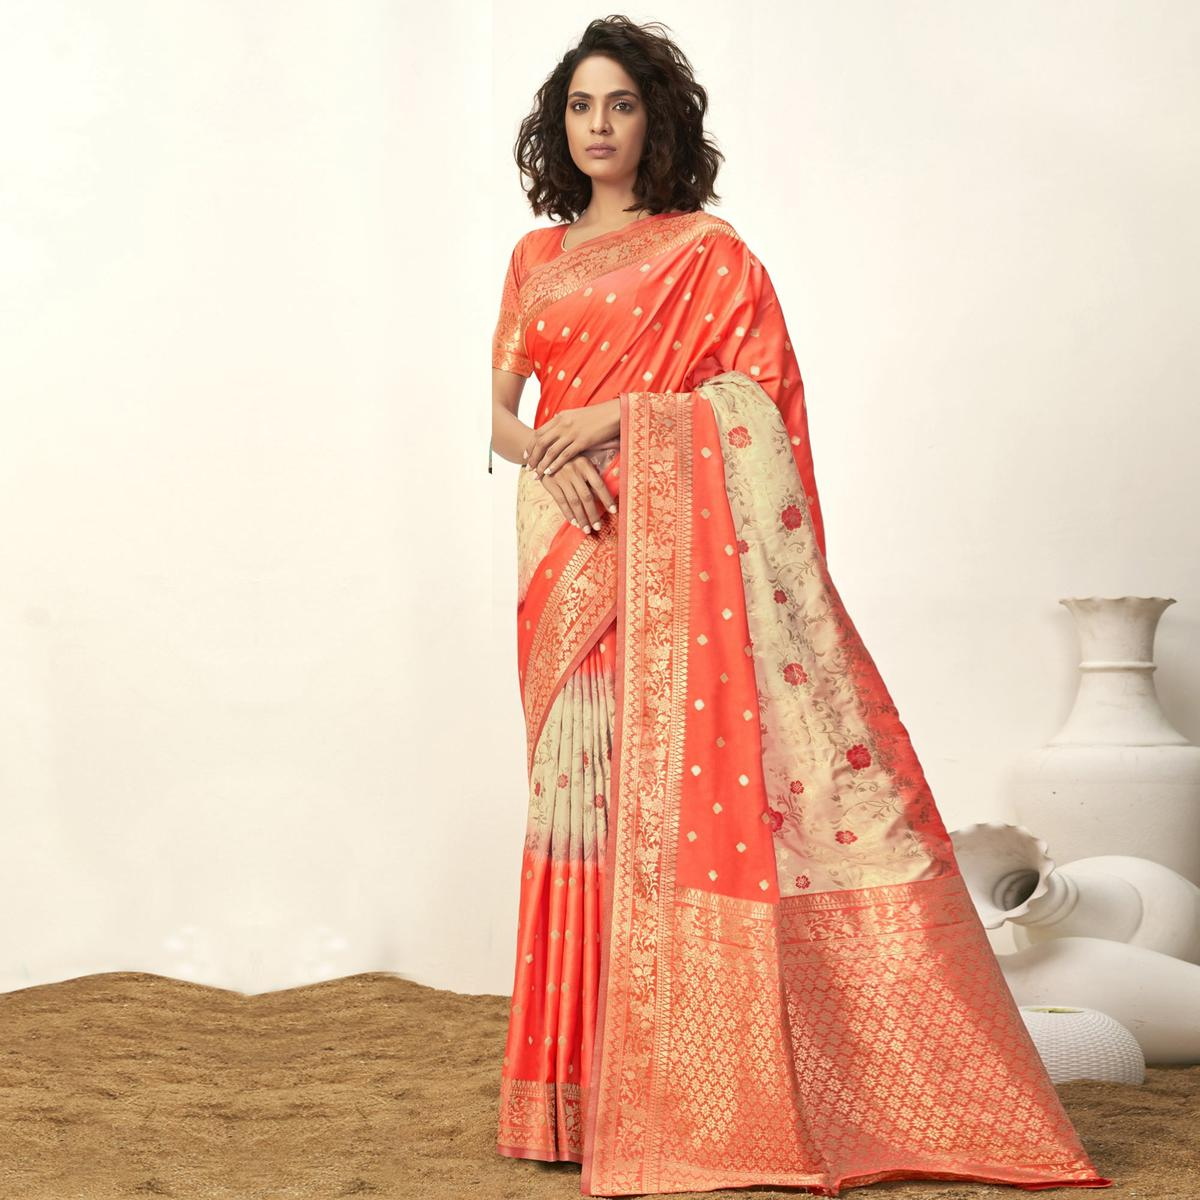 Triveni Orange & Golden Colored Art Silk Party Wear Solid Woven Saree With Blouse Piece